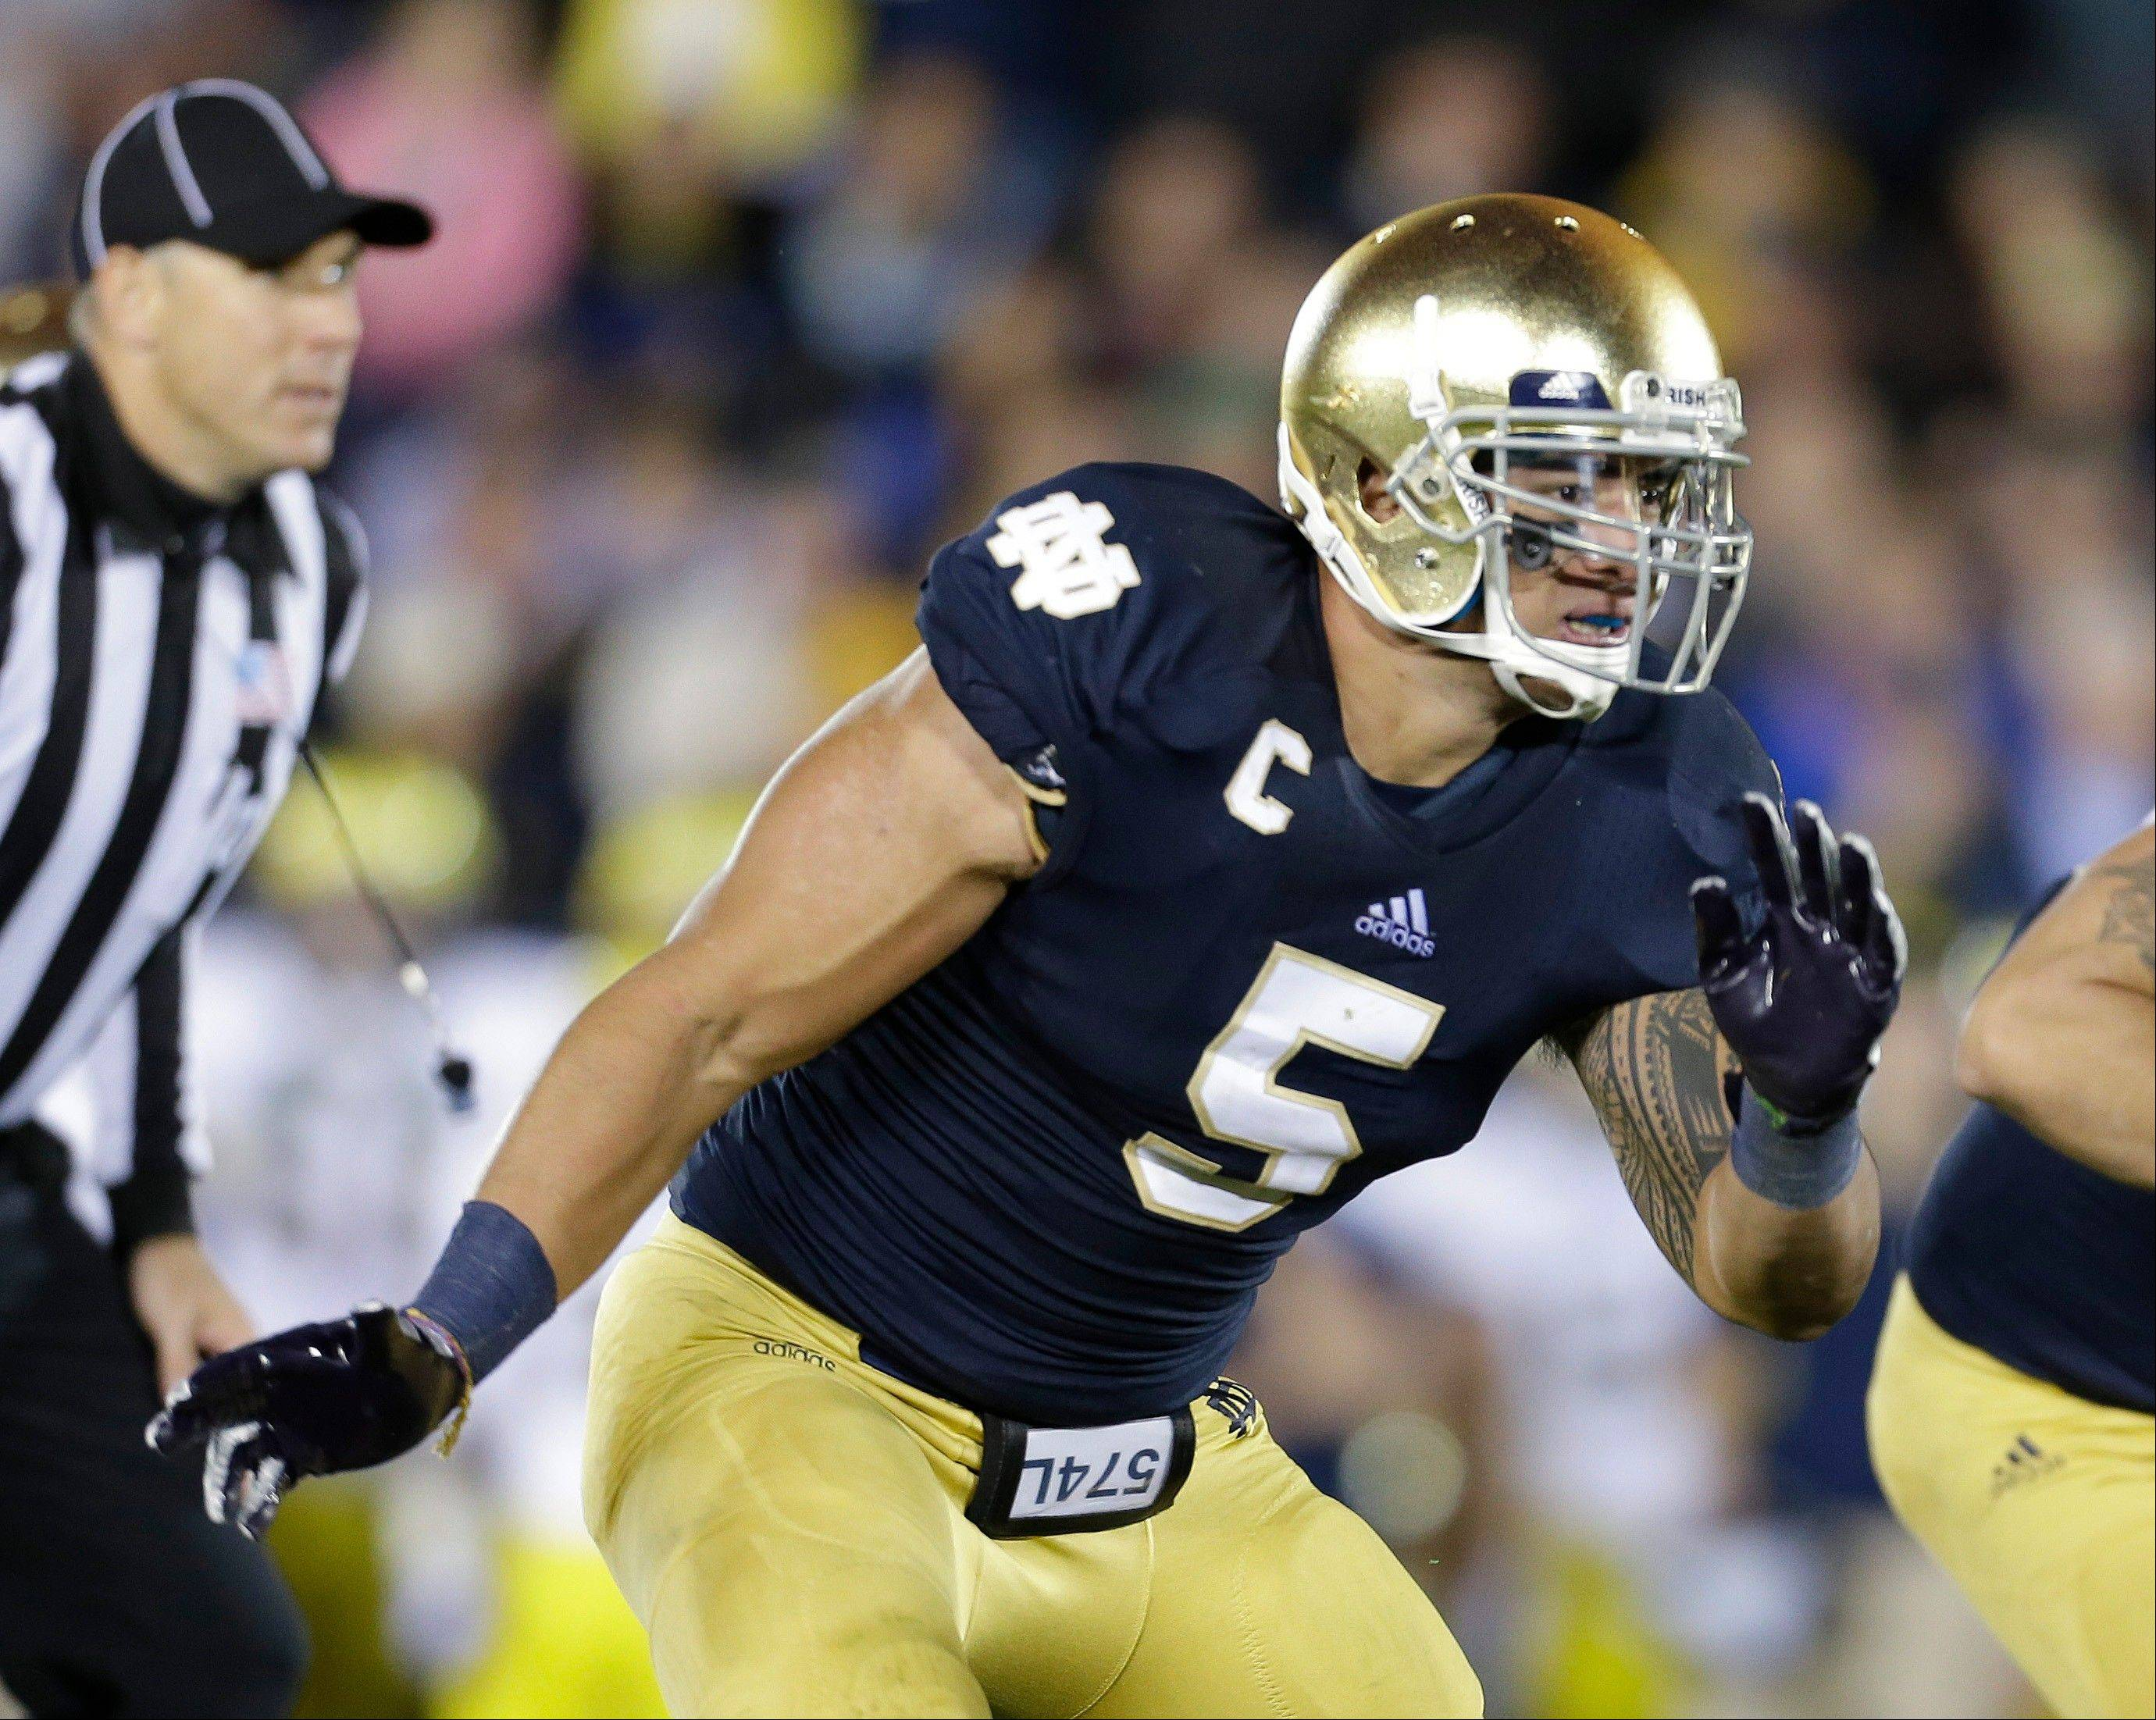 Notre Dame linebacker Manti Te'o pursues the football against Michigan, in South Bend, Ind. Notre Dame defensive coordinator Bob Diaco believes Manti Teío is the finest football player in college.